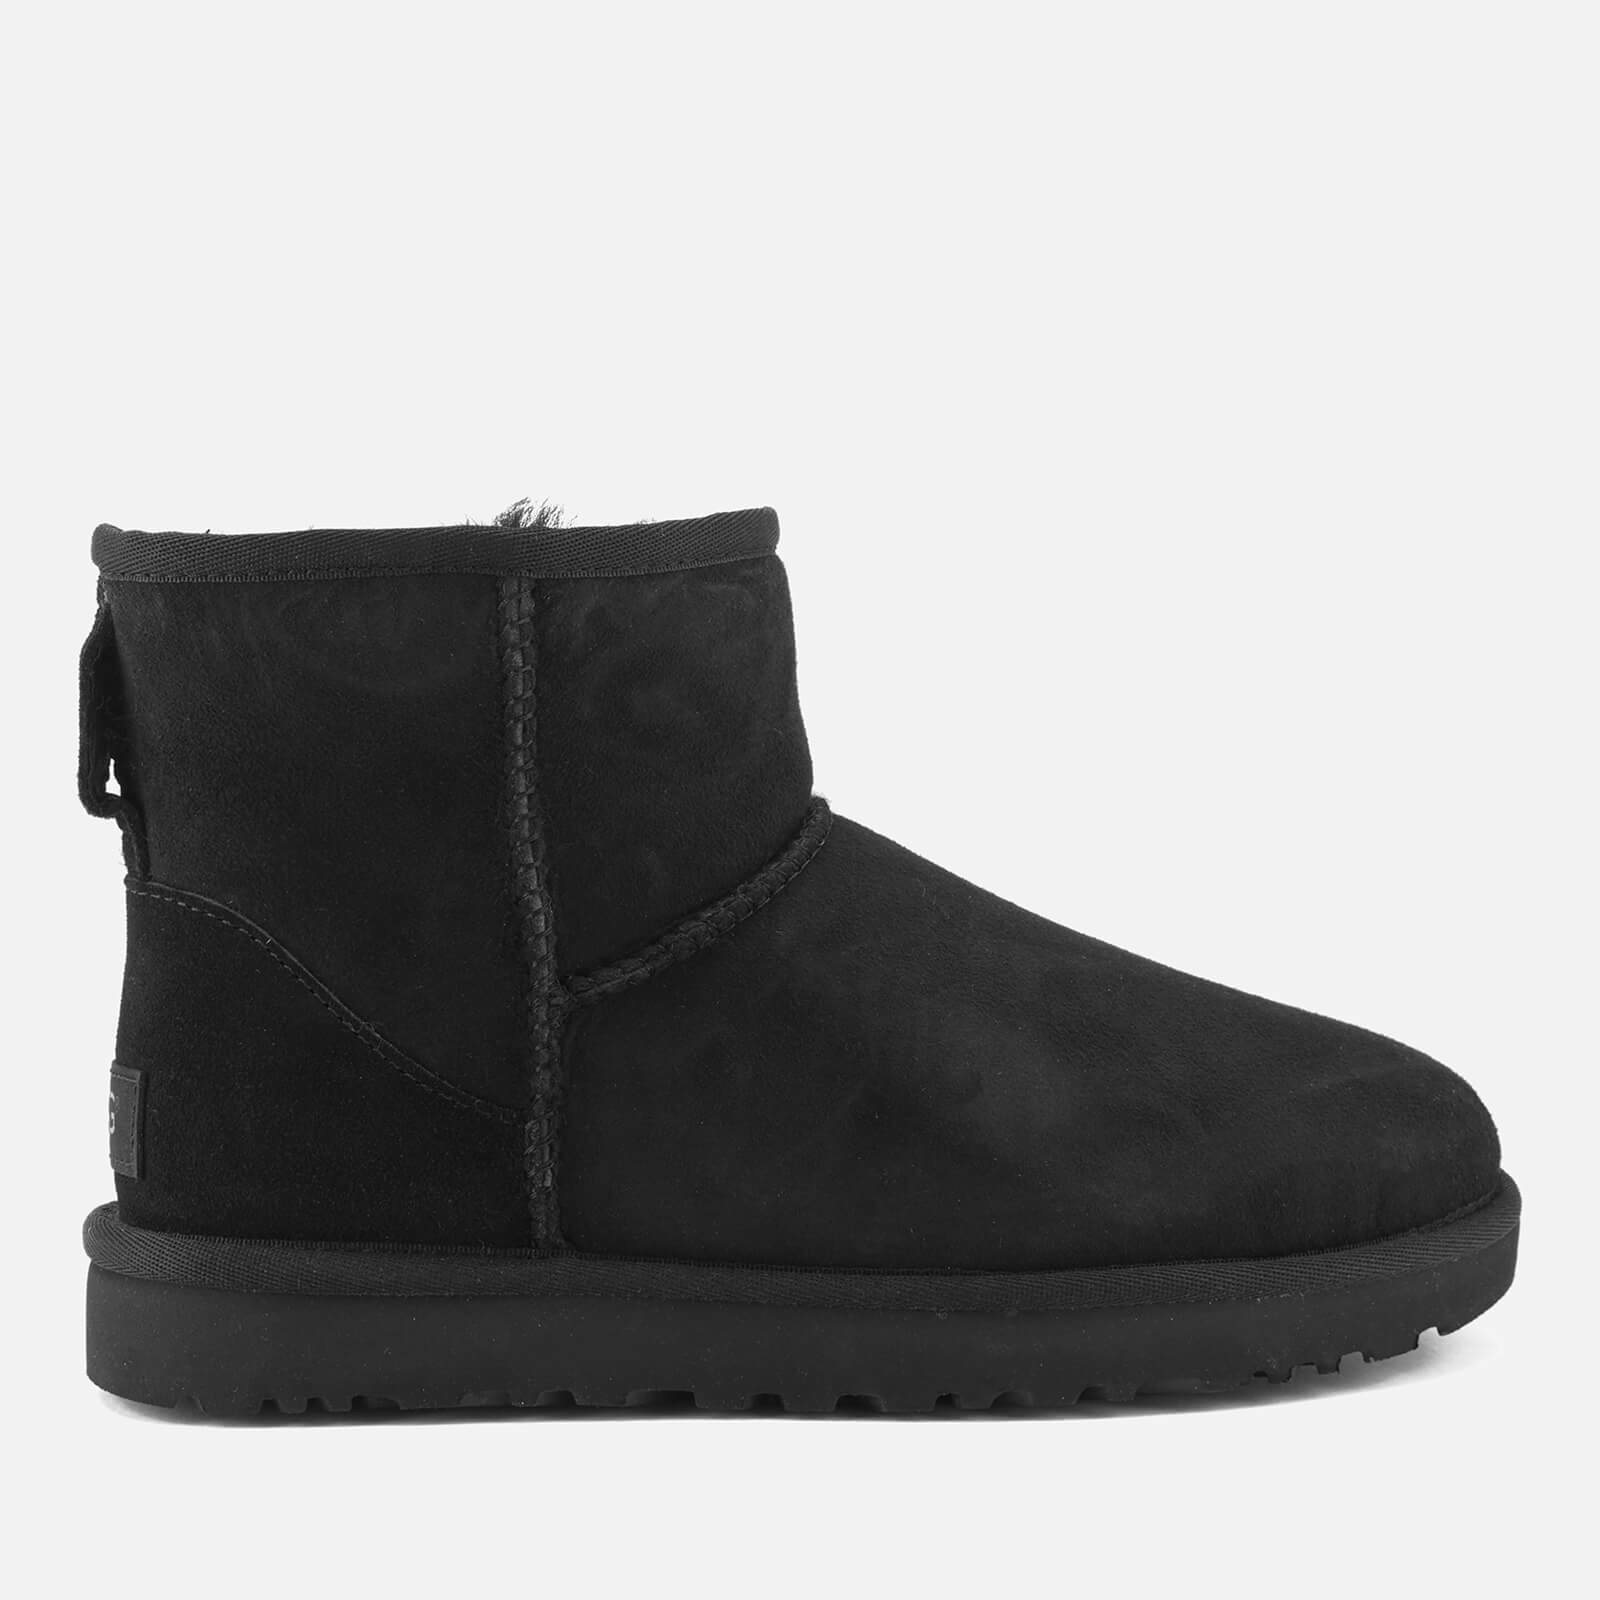 AllSole AU & UK: 20% OFF Boots with Code